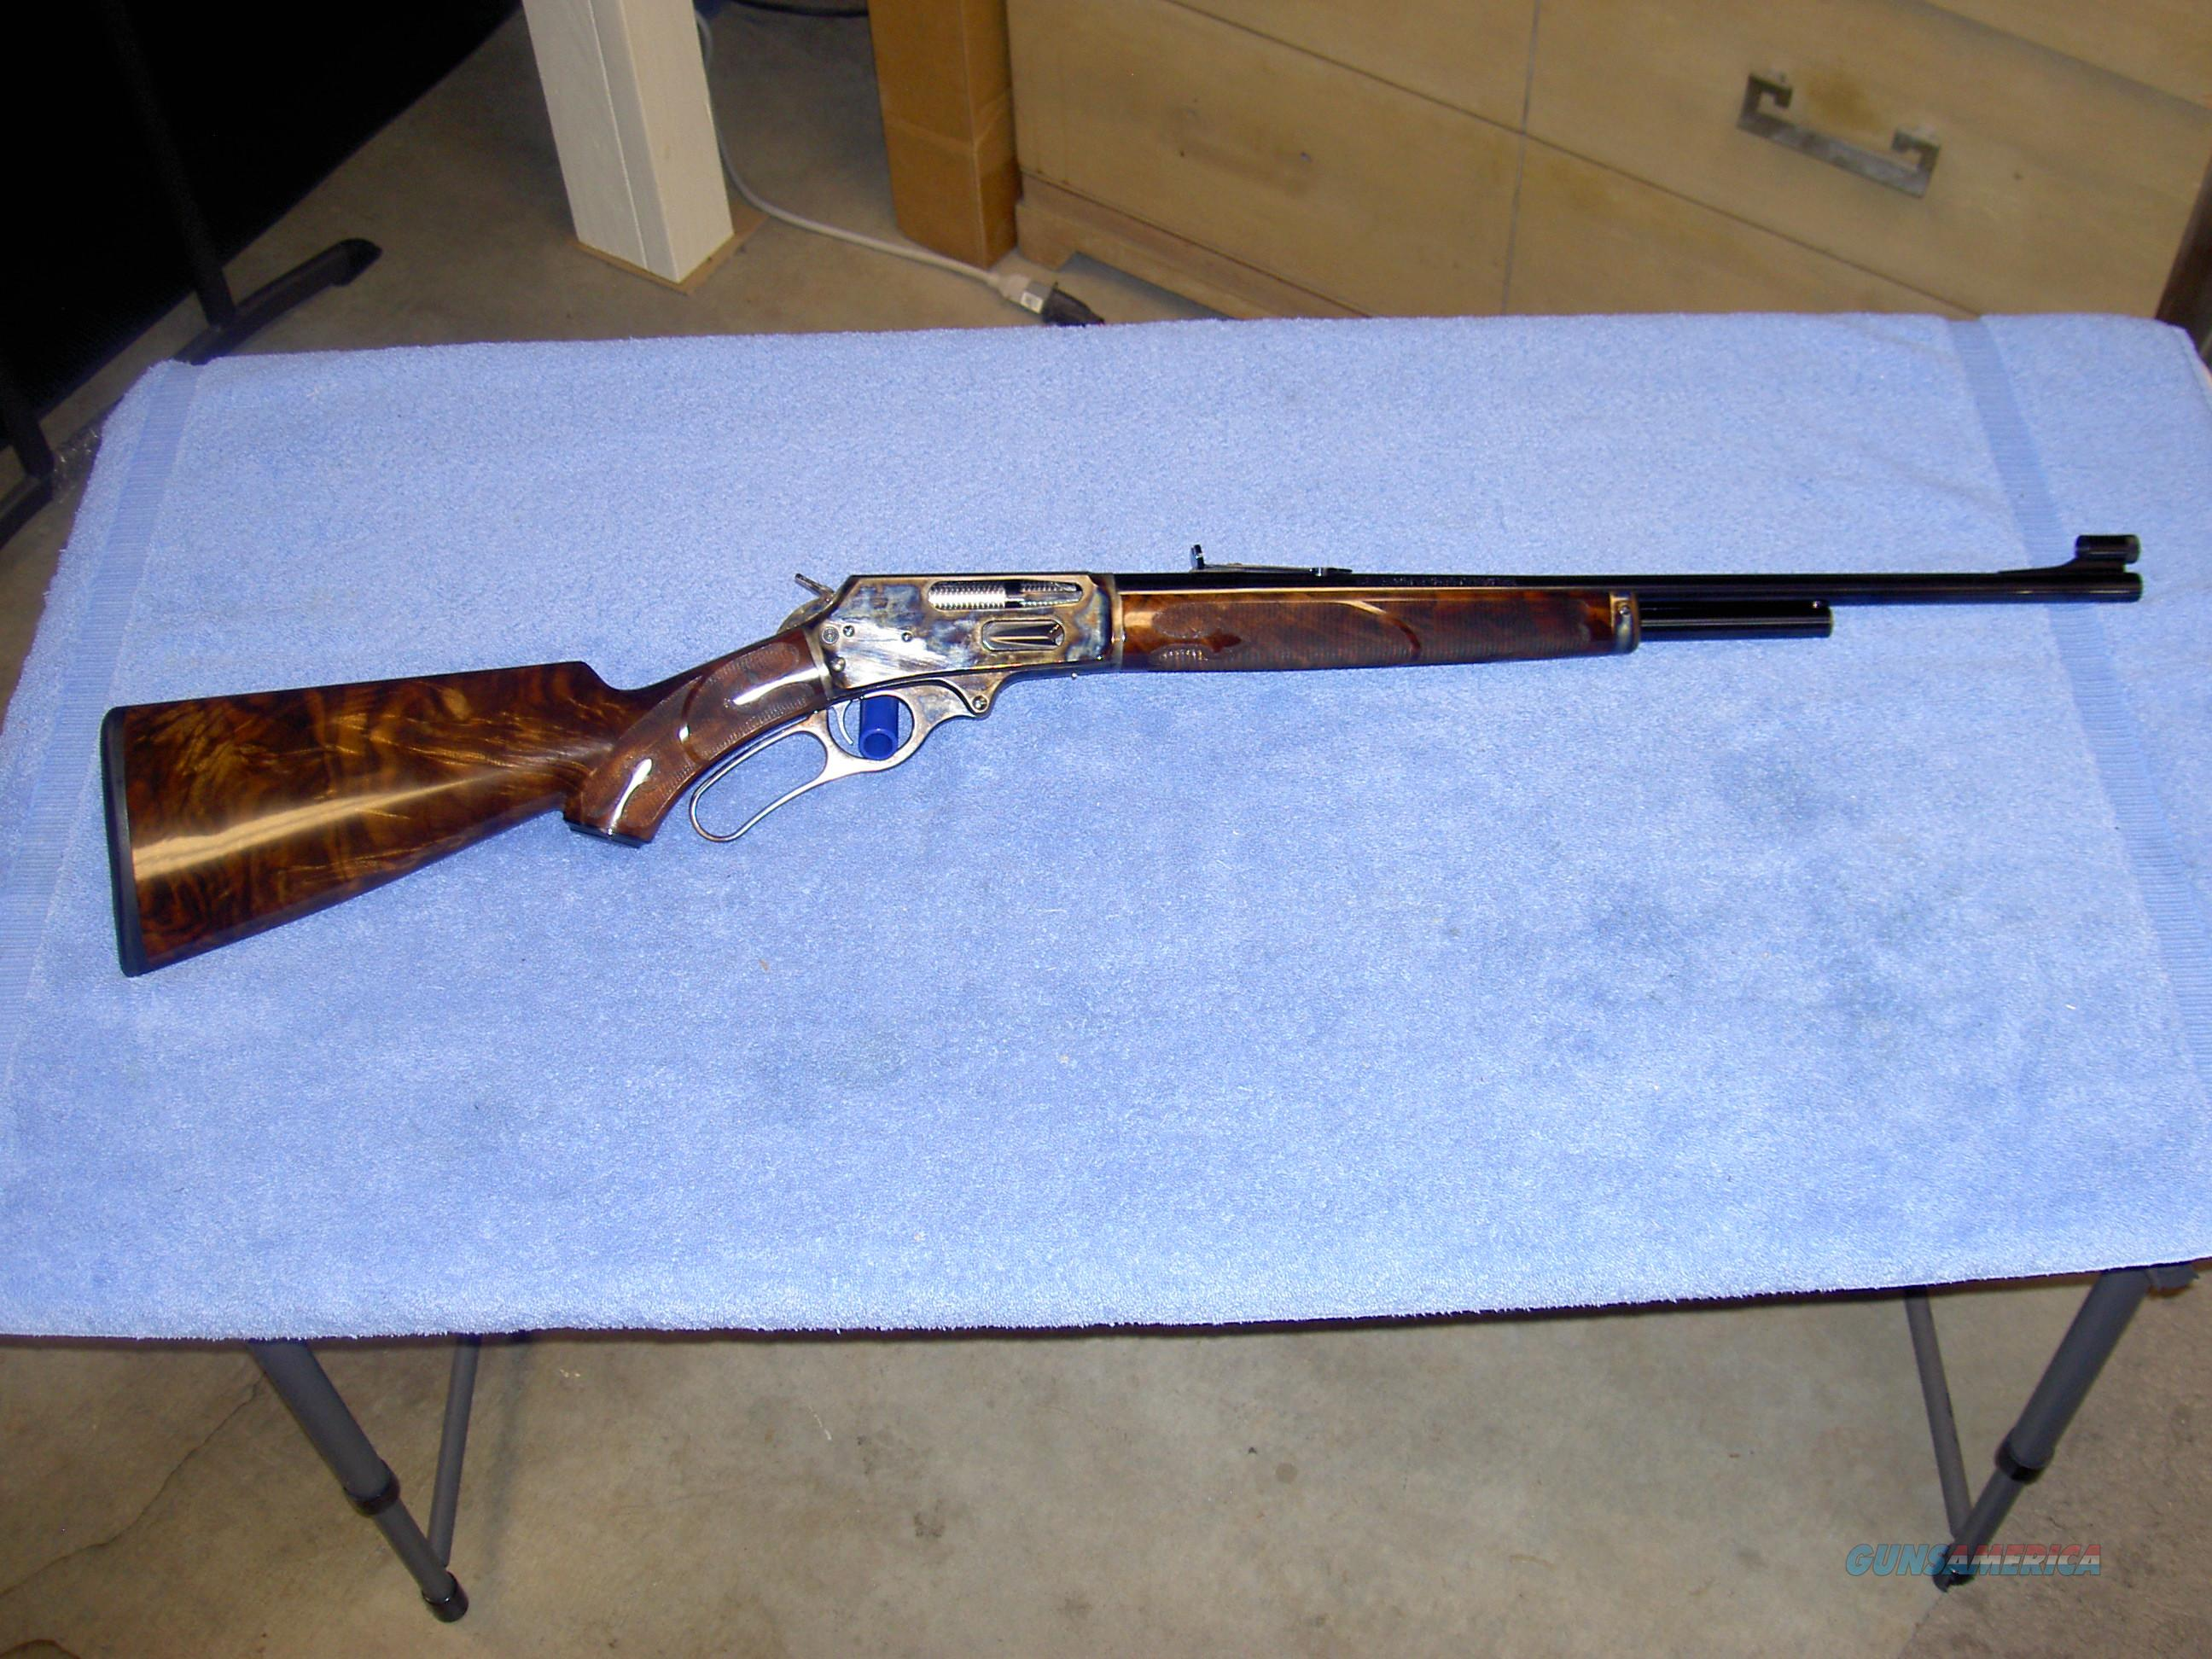 NEW COMPLETE CUSTOM BUILT MARLIN IN .308 MARLIN EXPRESS LEVER ACTION RIFLE   Guns > Rifles > Marlin Rifles > Modern > Lever Action